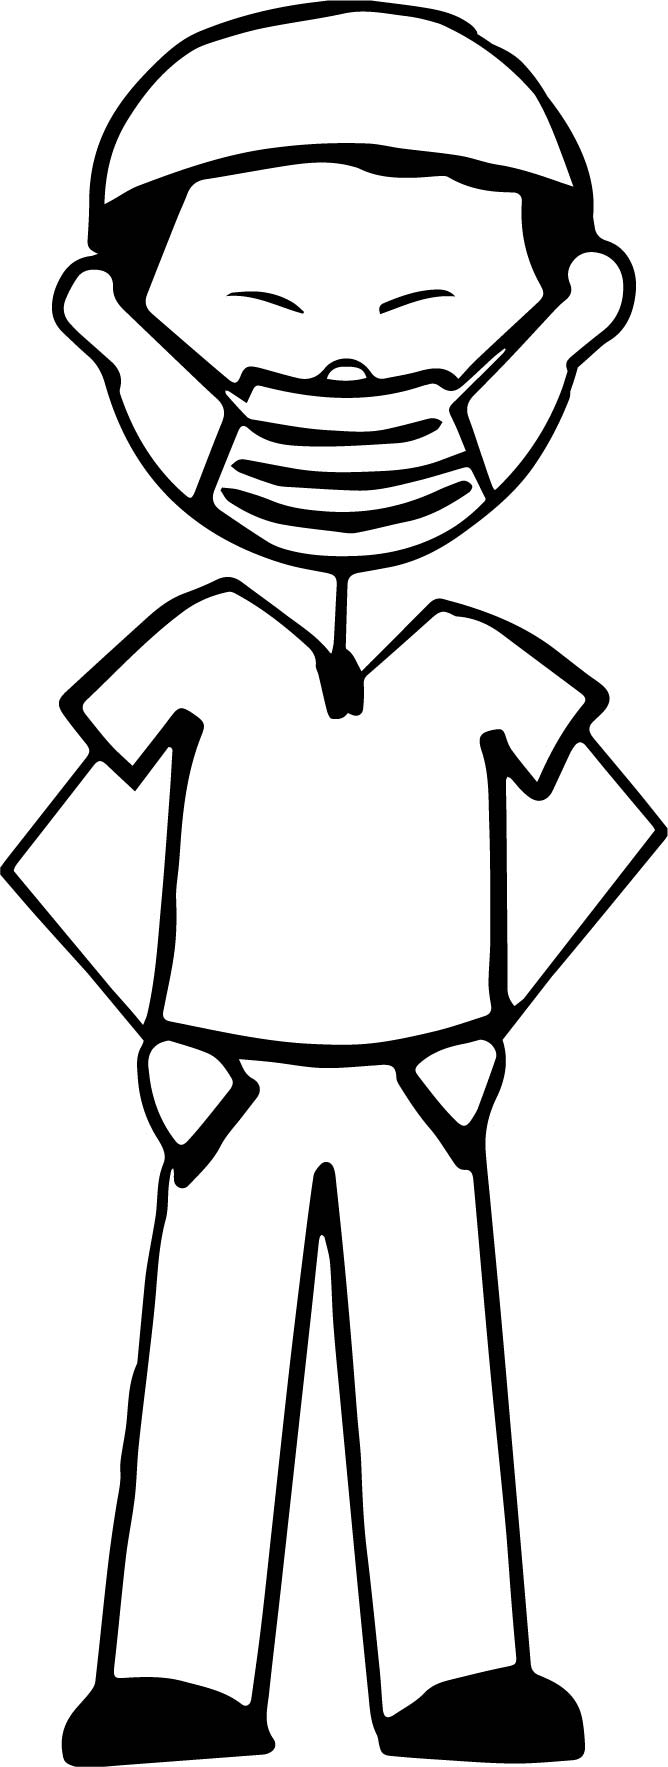 Cartoon Surgeon Wearing A Surgical Mask Coloring Page